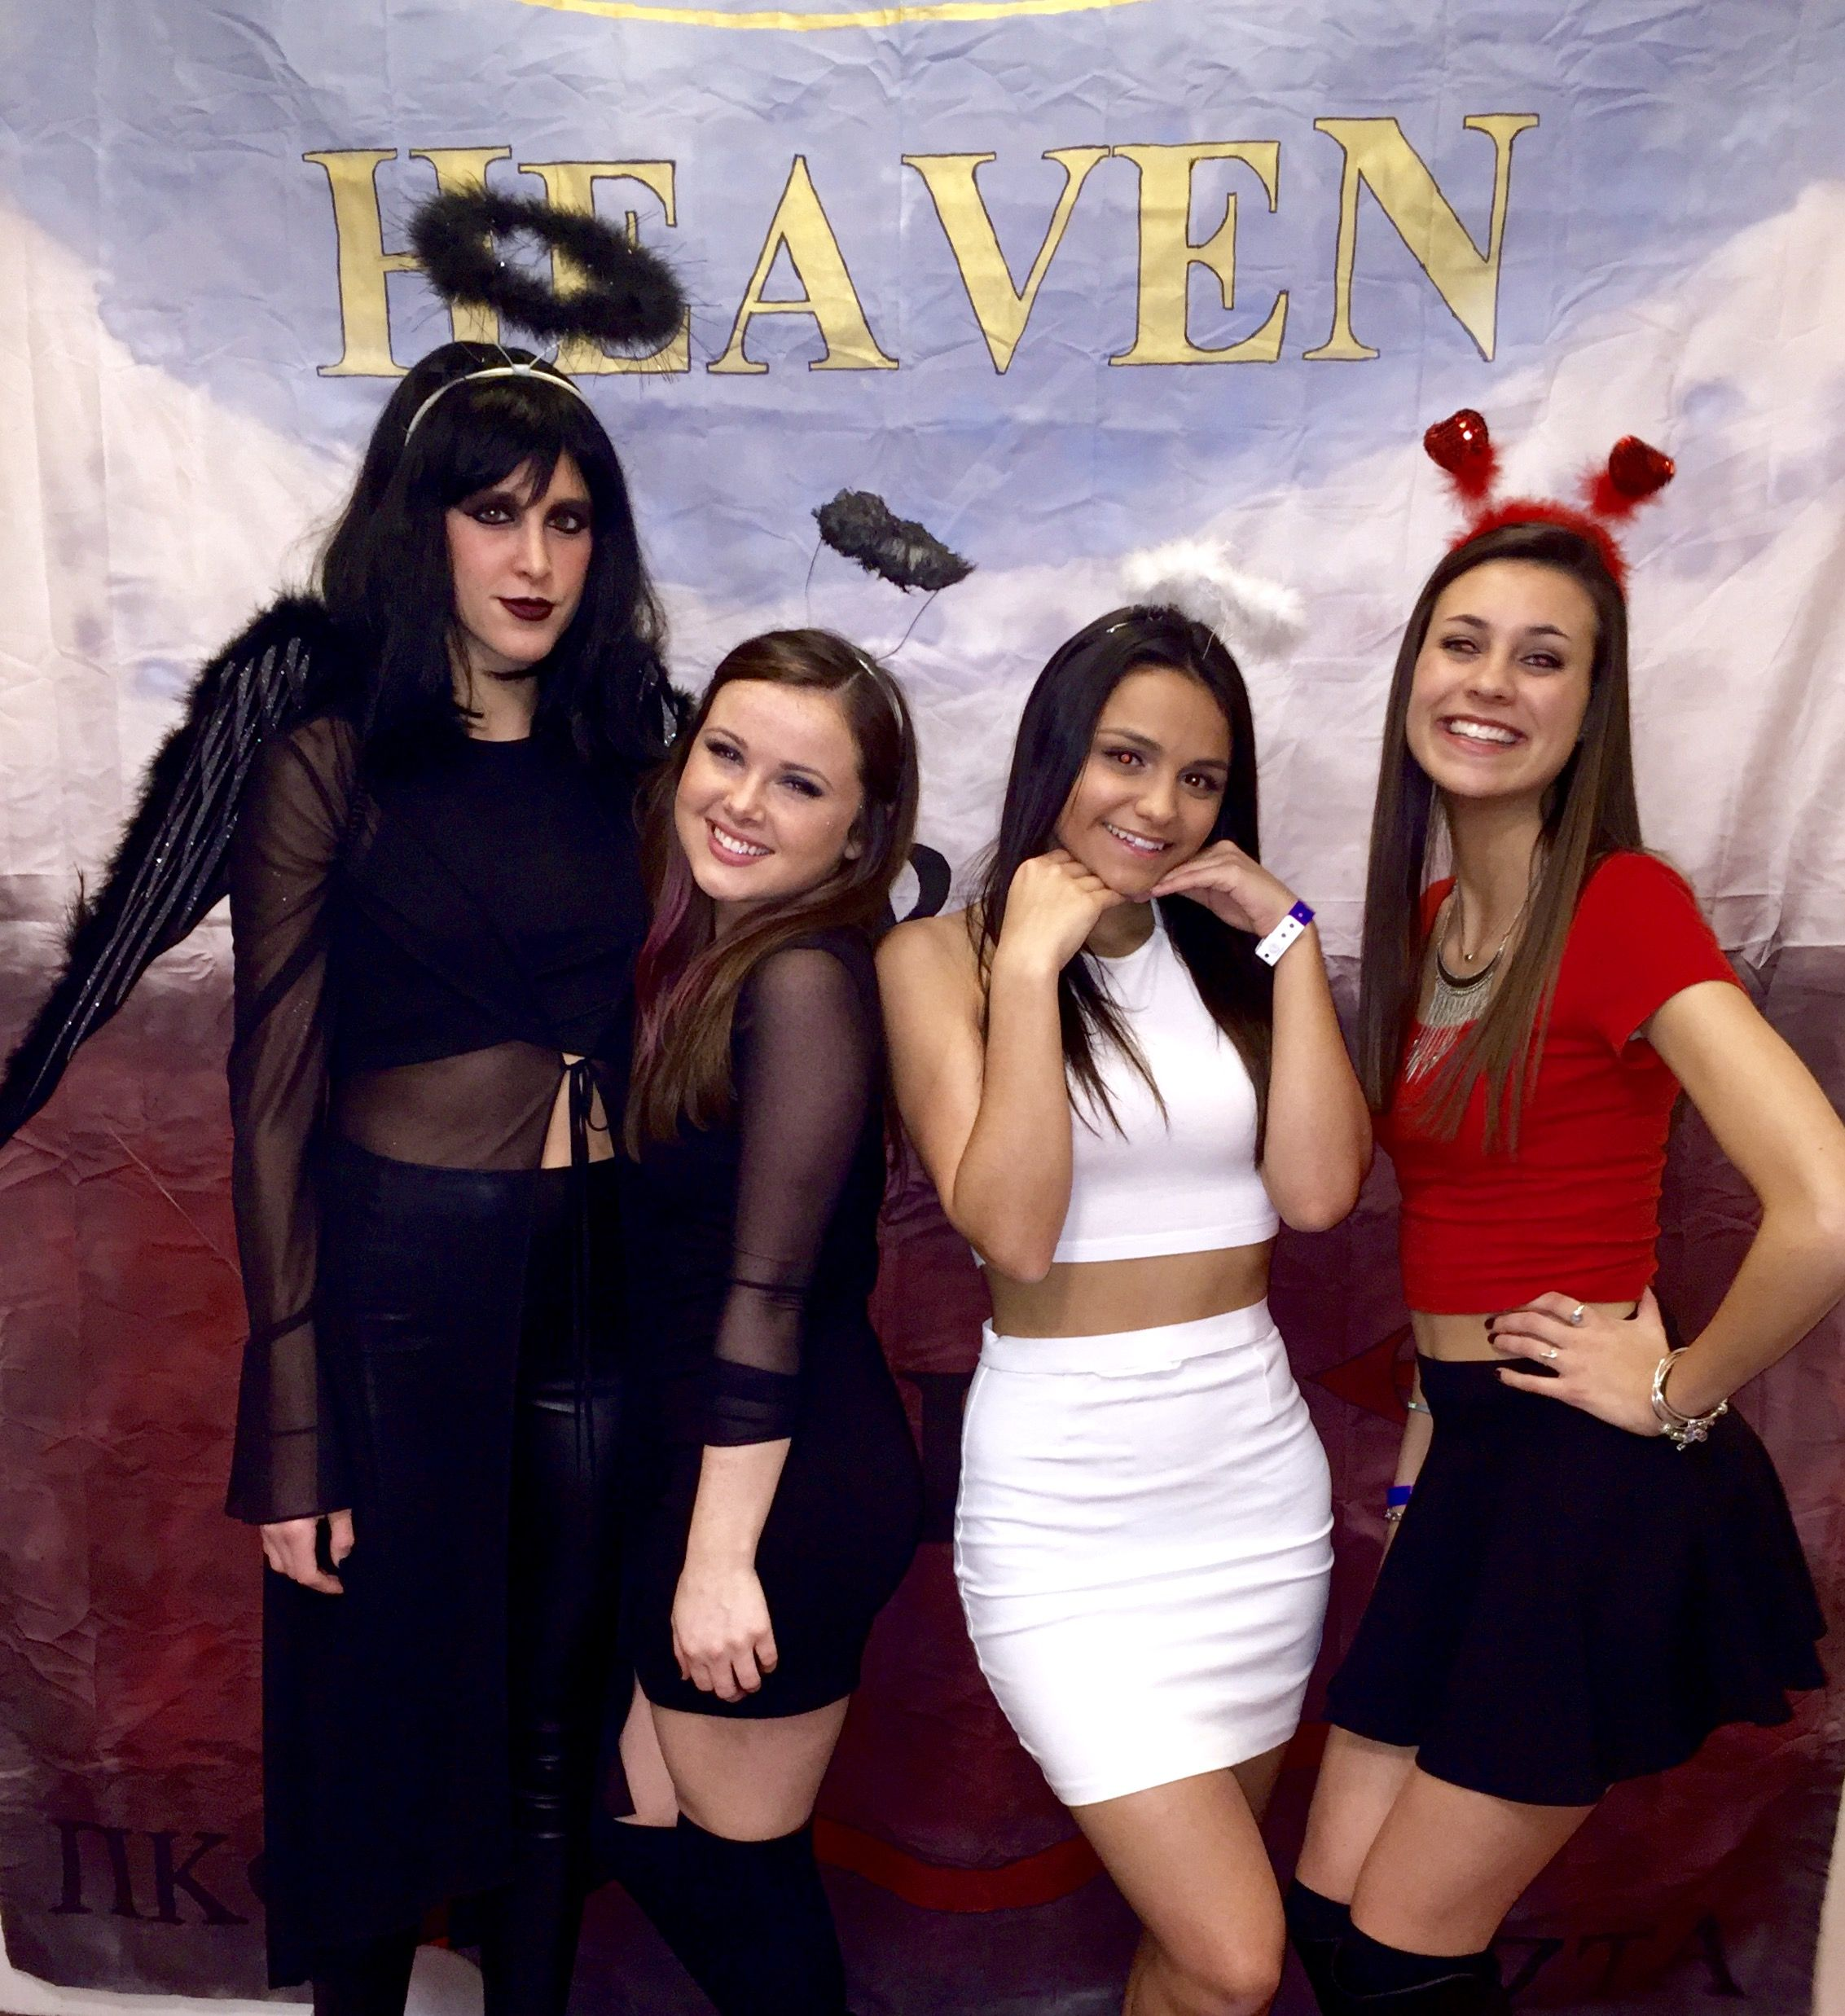 heaven and hell mixer, valentine's day, angel, devil, bad angel